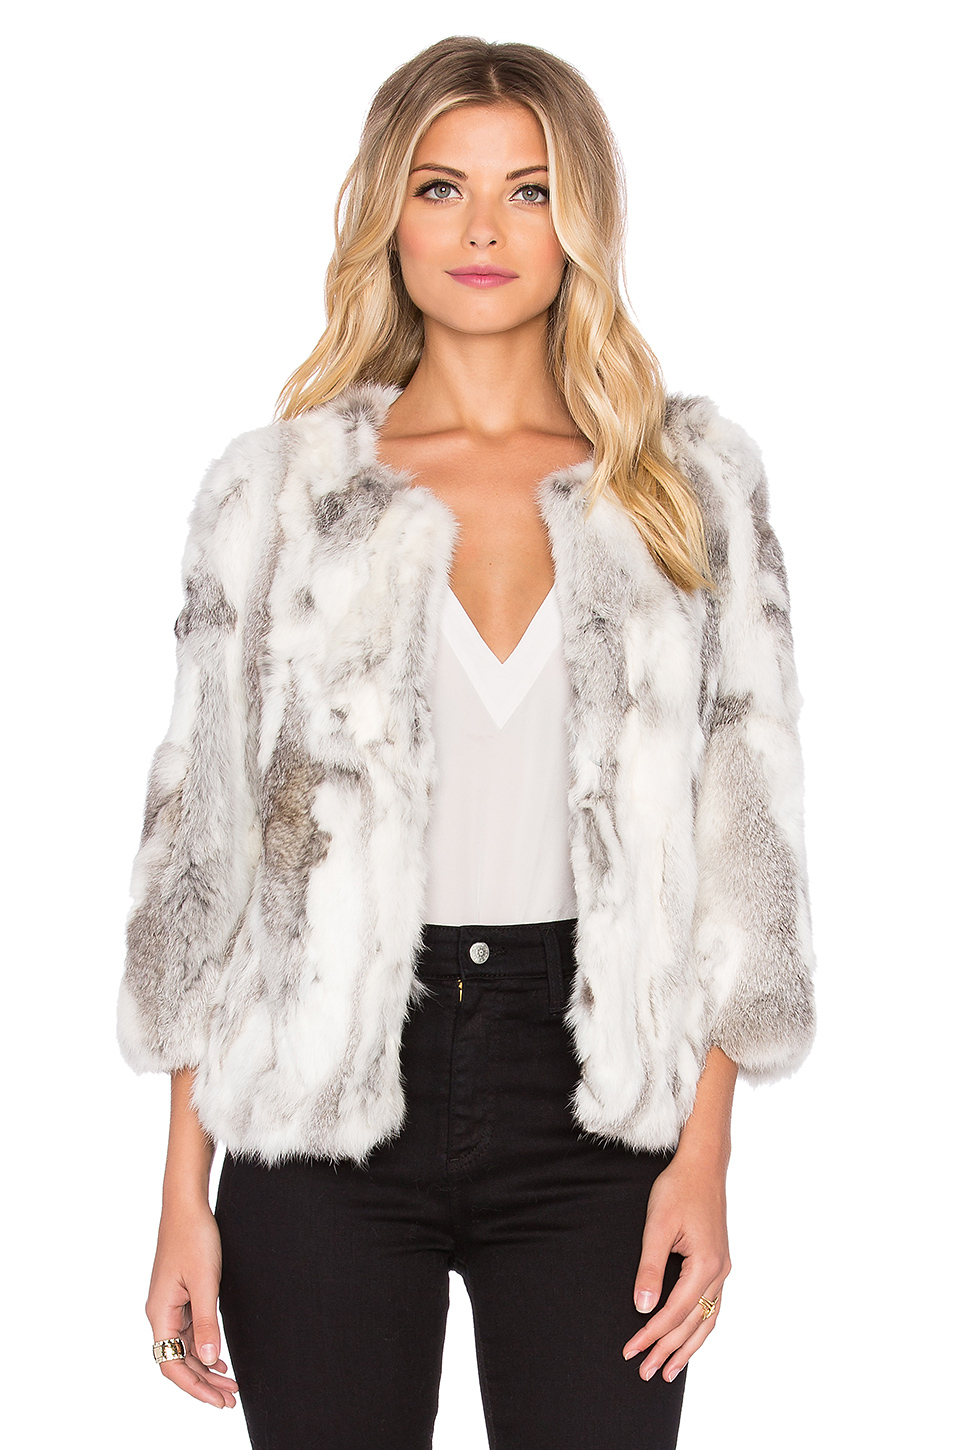 Rabit Fur Coat - Tradingbasis